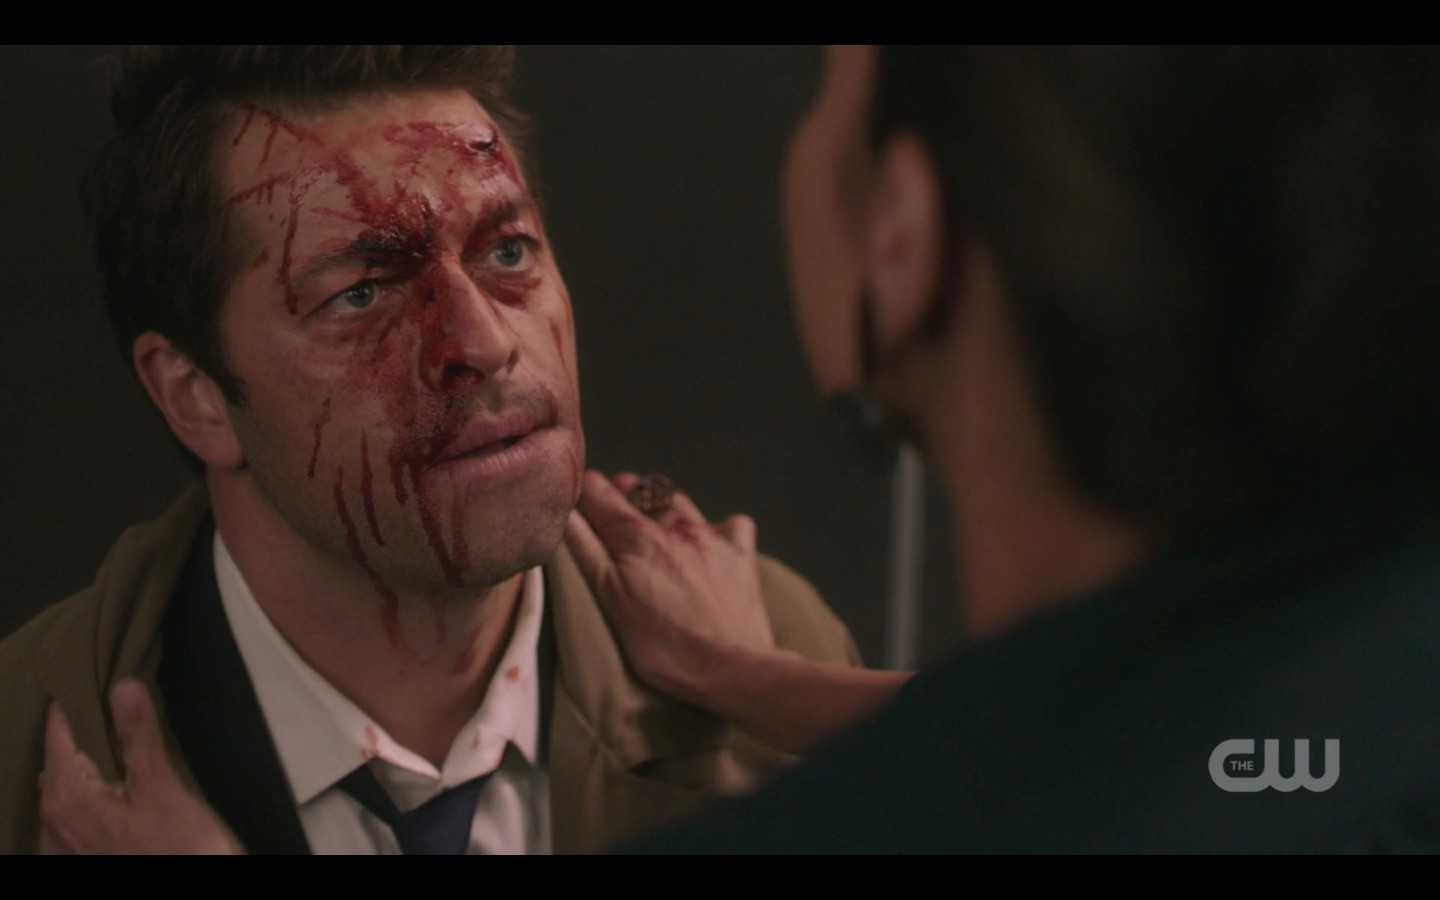 castiel misha collins blooded up again spn 1409